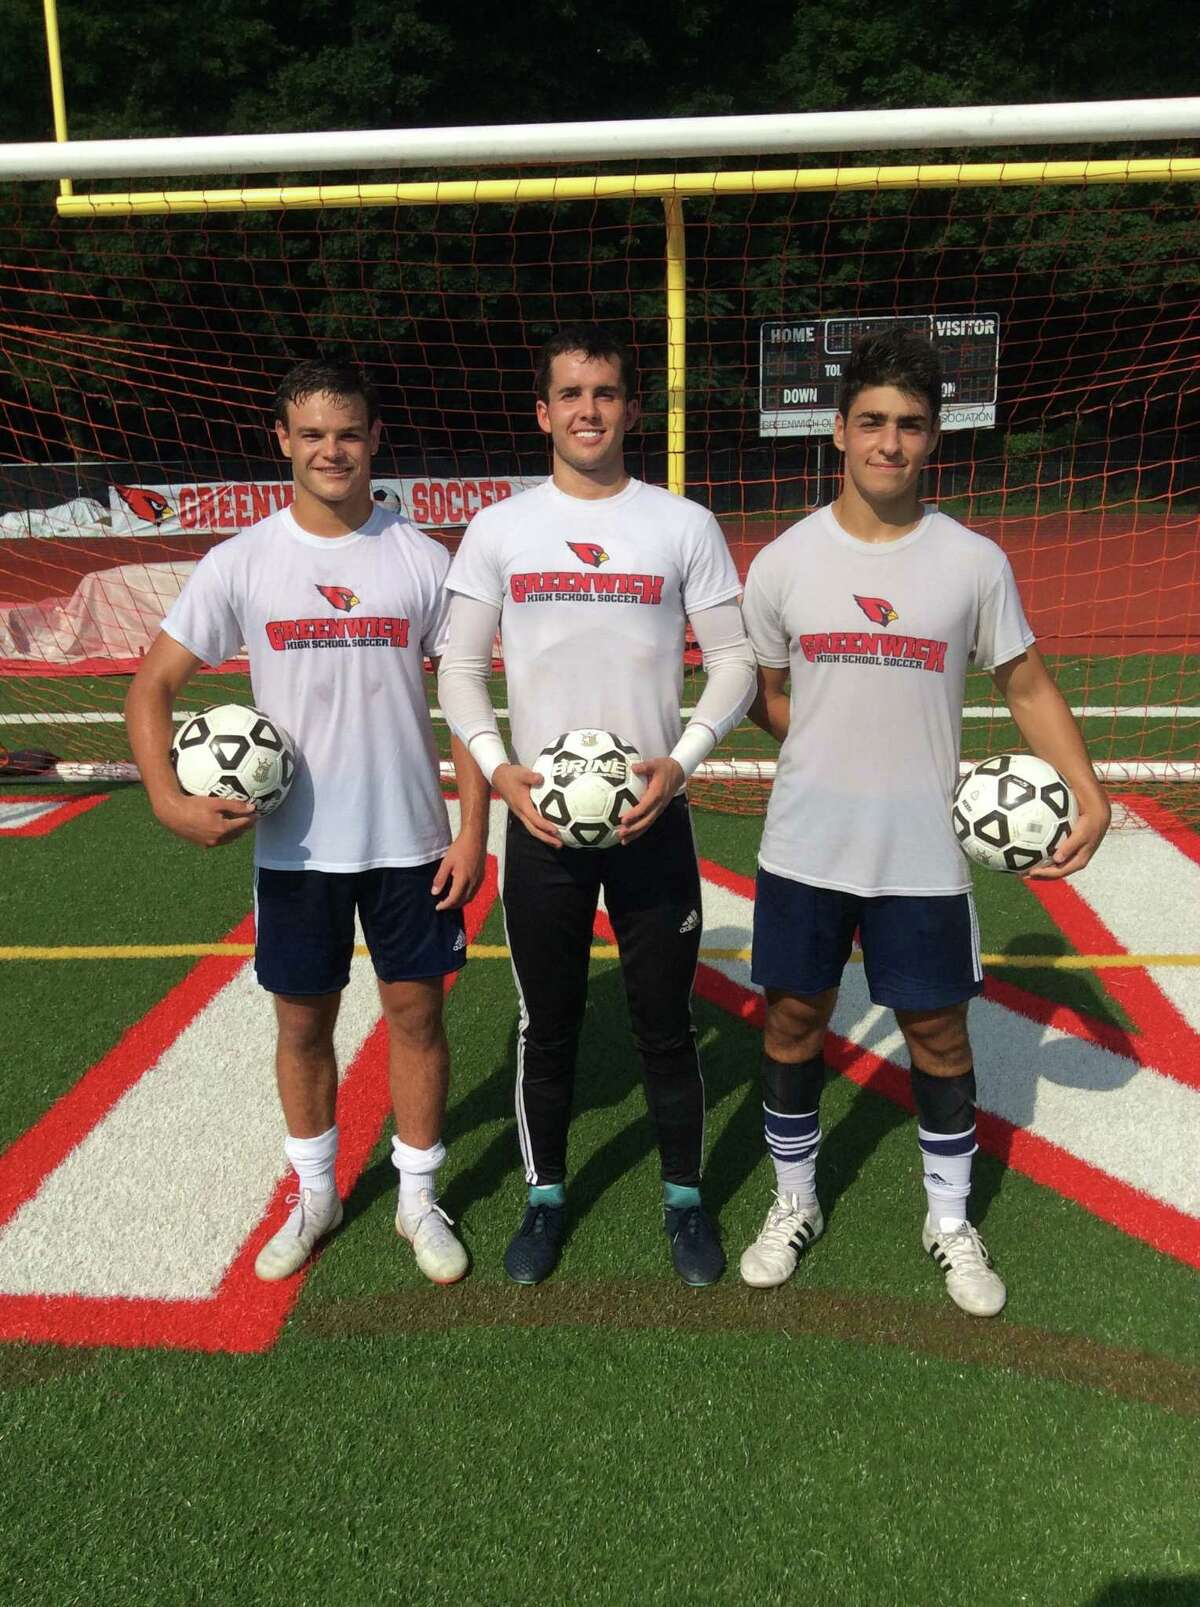 From left to right, Francisco Liguori, Jimmy Johnson and Ben Rifkin are senior captains of the Greenwich High School boys soccer team, which won the FCIAC championship in 2017.